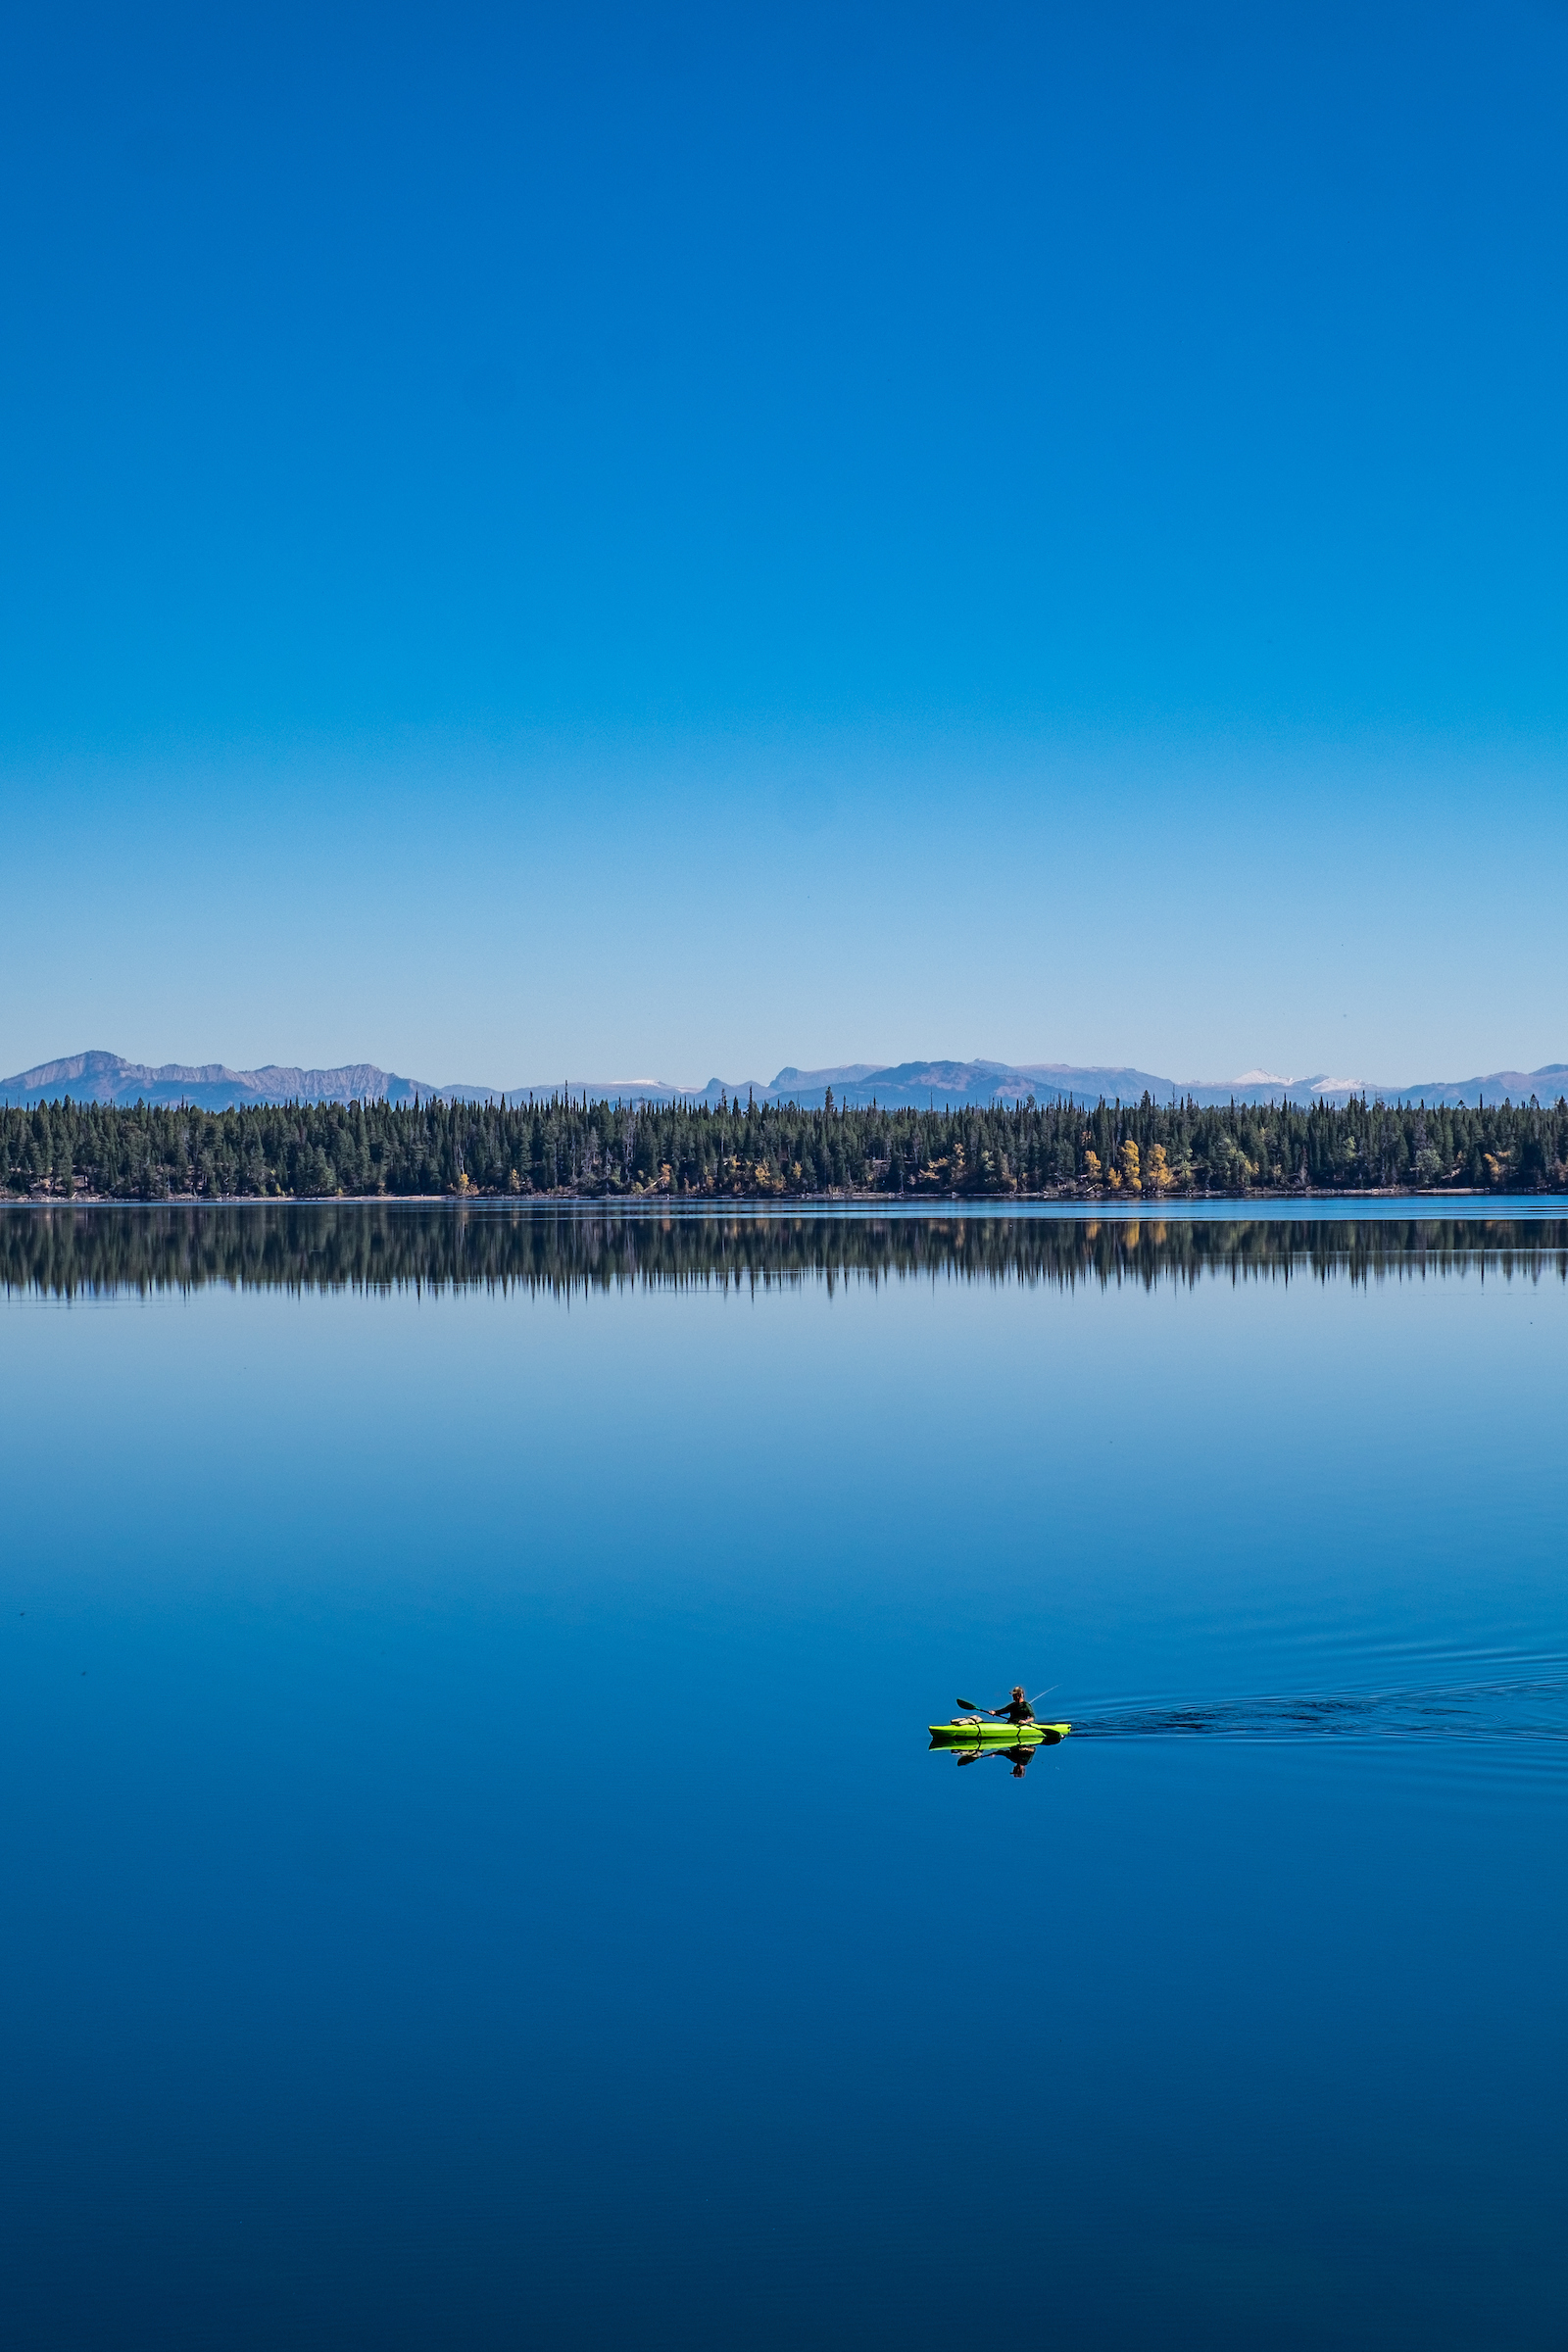 A paddler glides on the still waters of Jenny Lake.